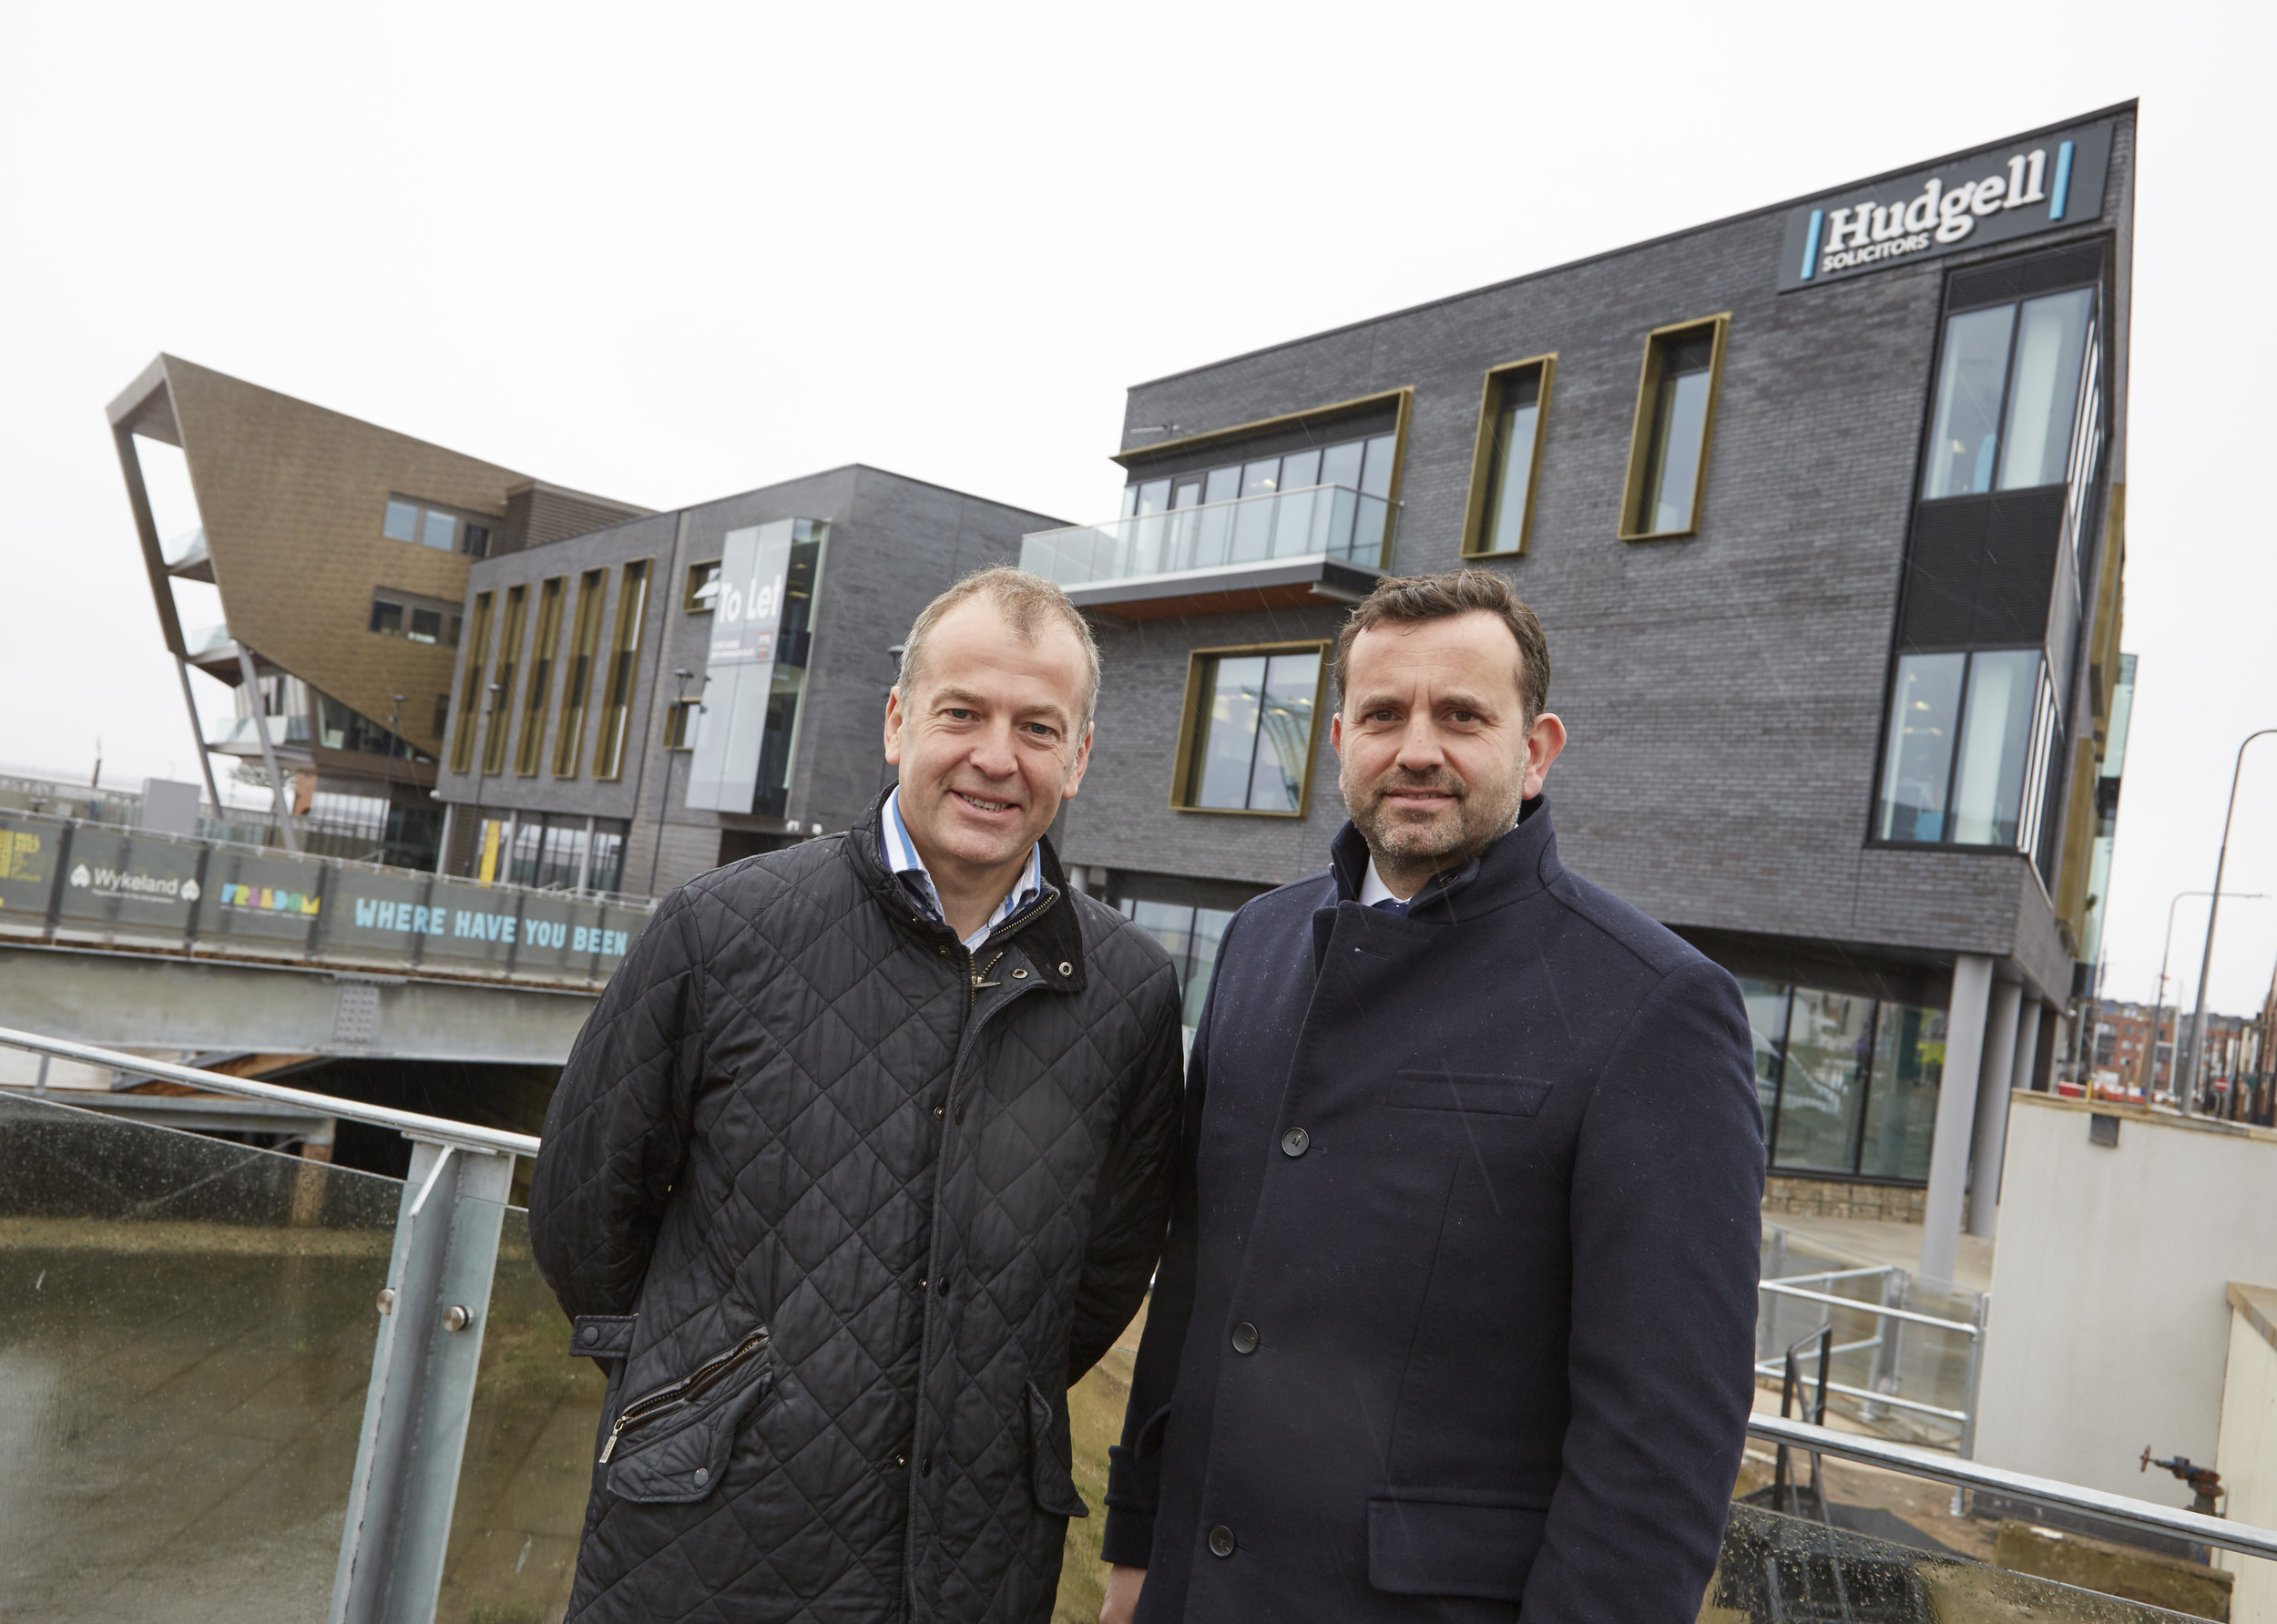 Hudgell Solicitors Managing Director Neil Hudgell, left, with Wykeland Group Managing Director Dominic Gibbons at the @TheDock development in Hull's Fruit Market. The specialist law firm says its move to the site demonstrates its long-term commitment to Hull.